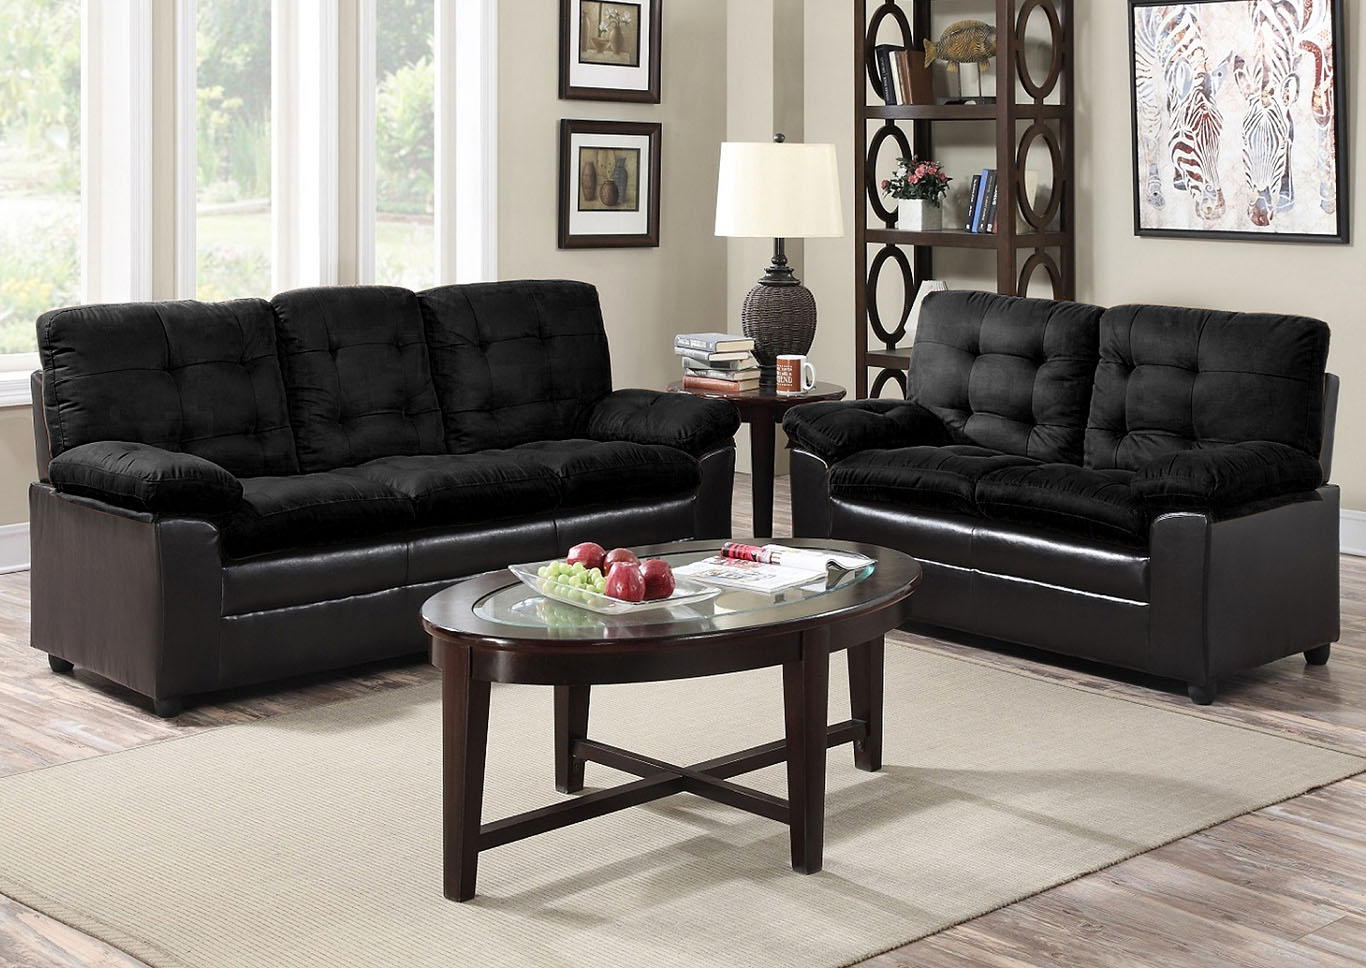 Black Microfiber Sofa,Global Trading